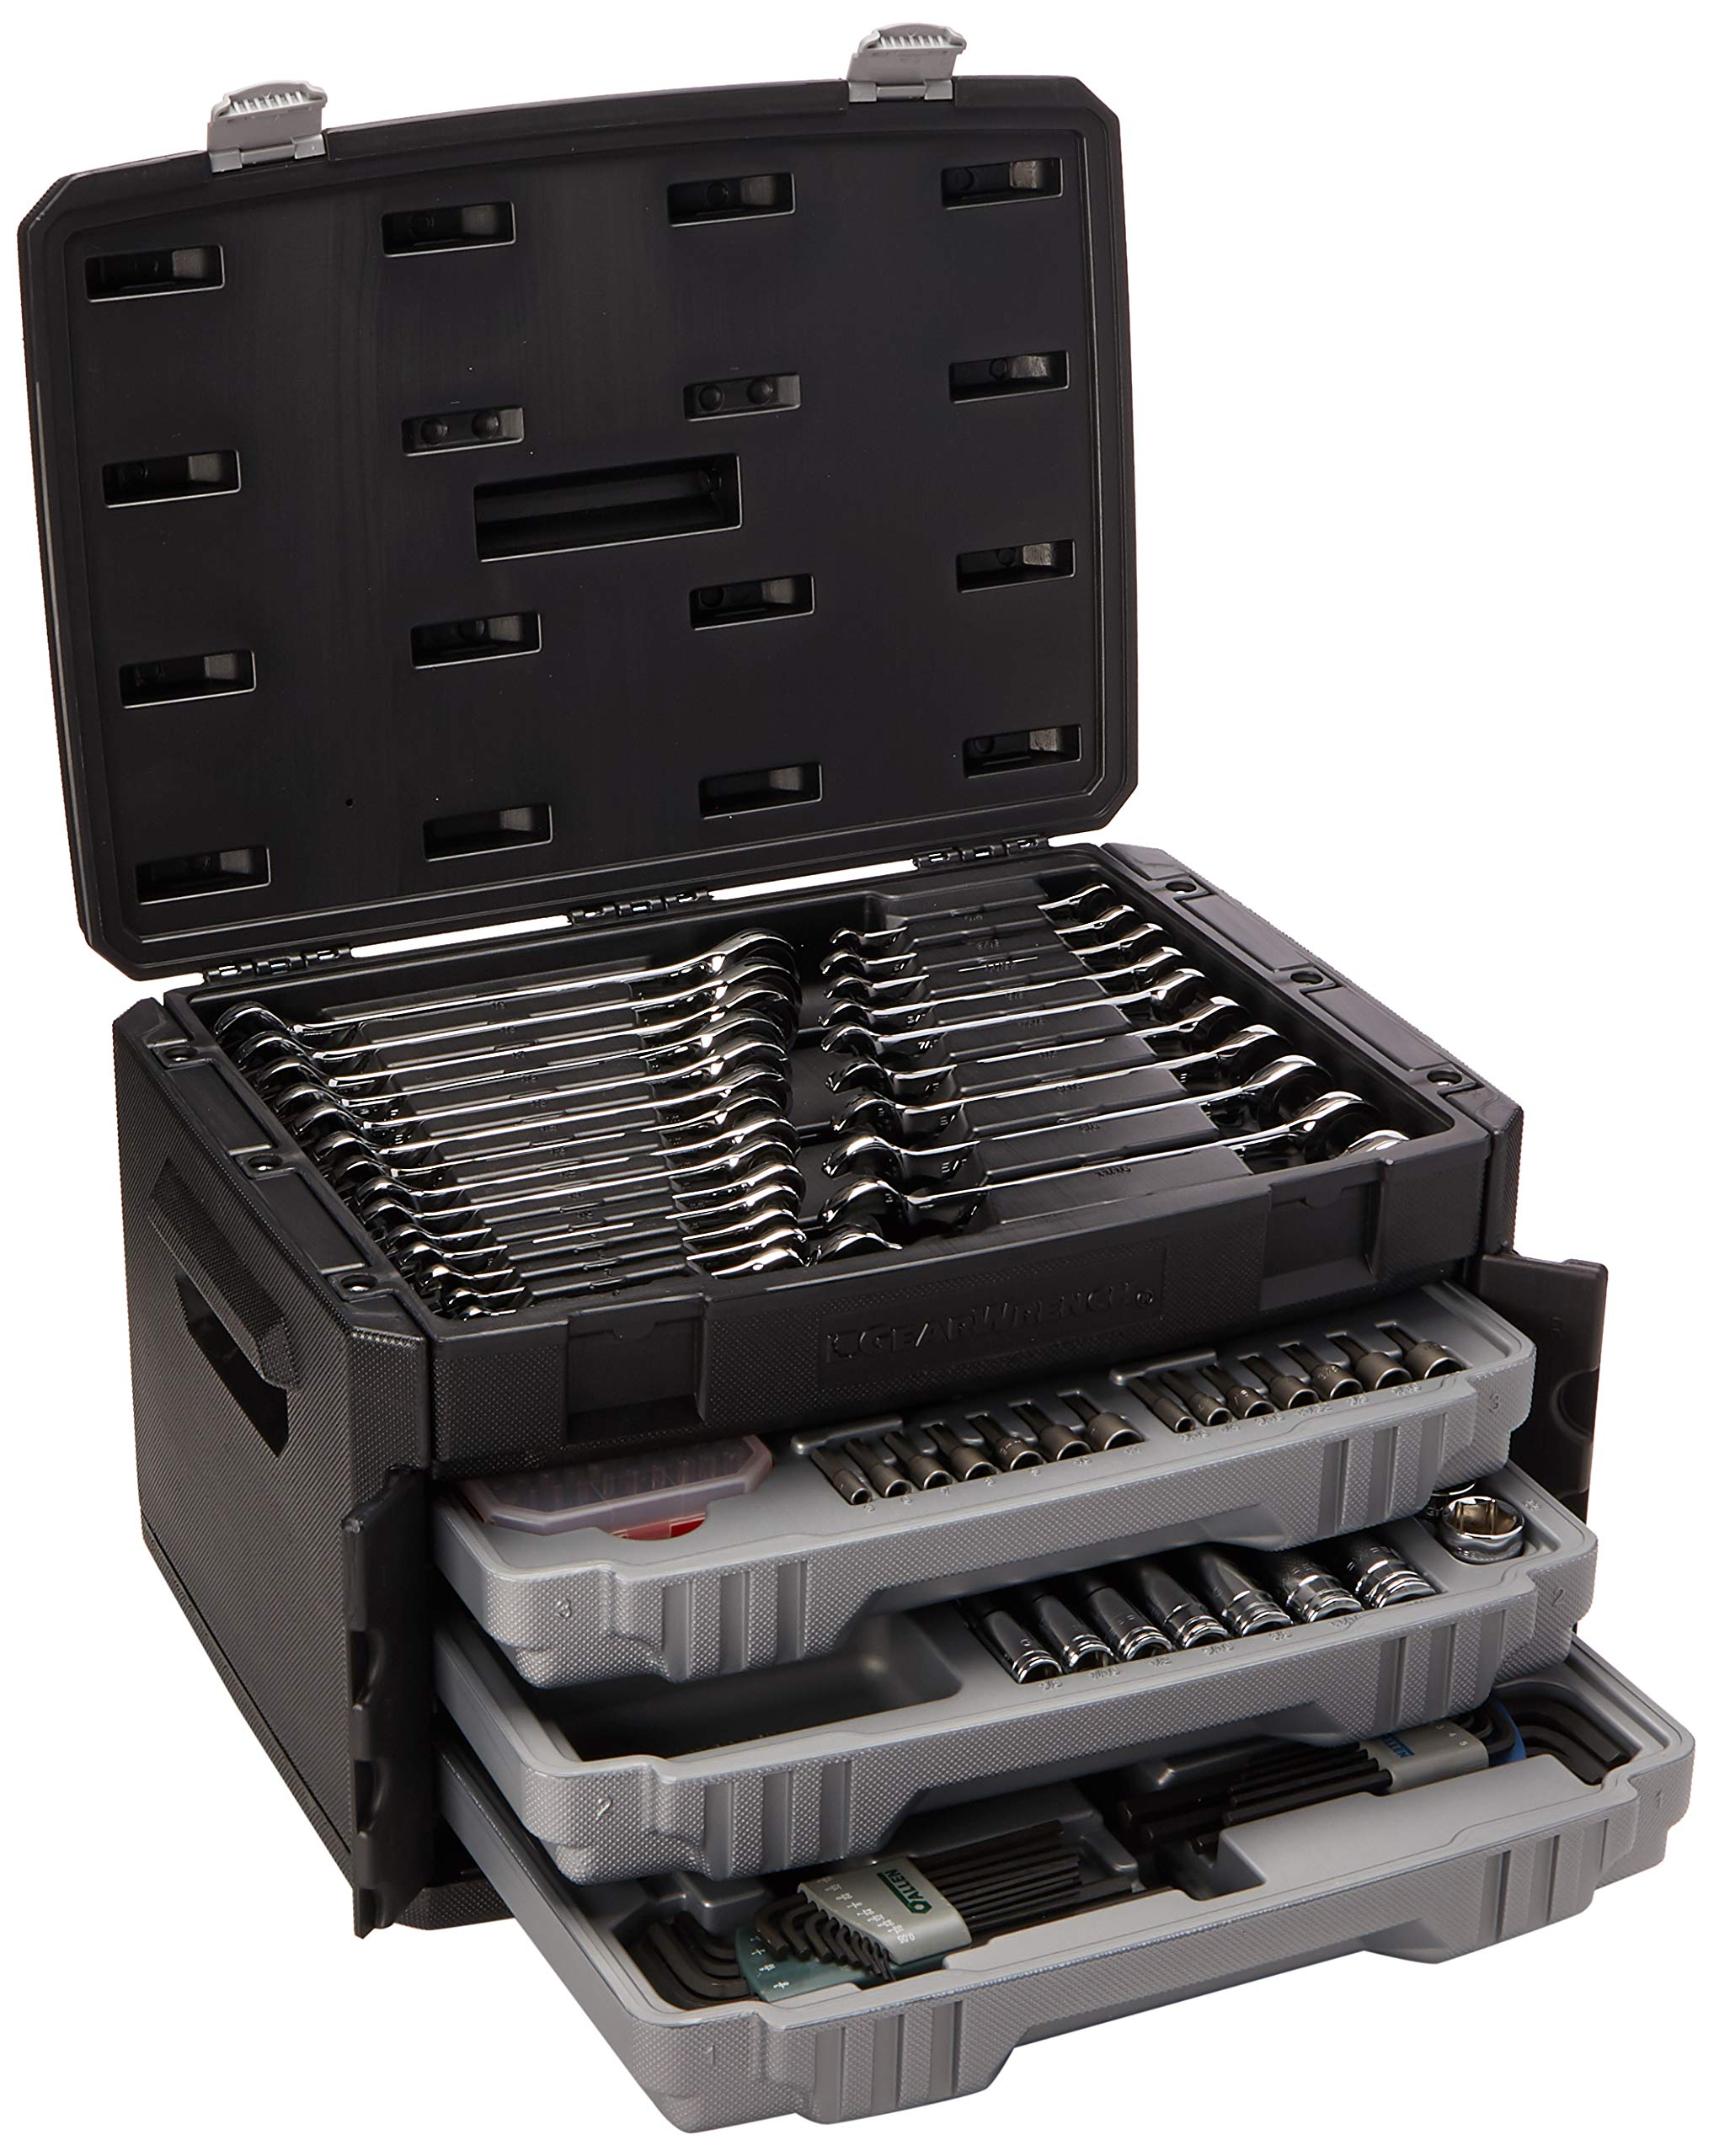 :GEARWRENCH 80944 - 232 Pc. Mechanics Tool Set in 3 Drawer Storage Box by GearWrench (Image #1)